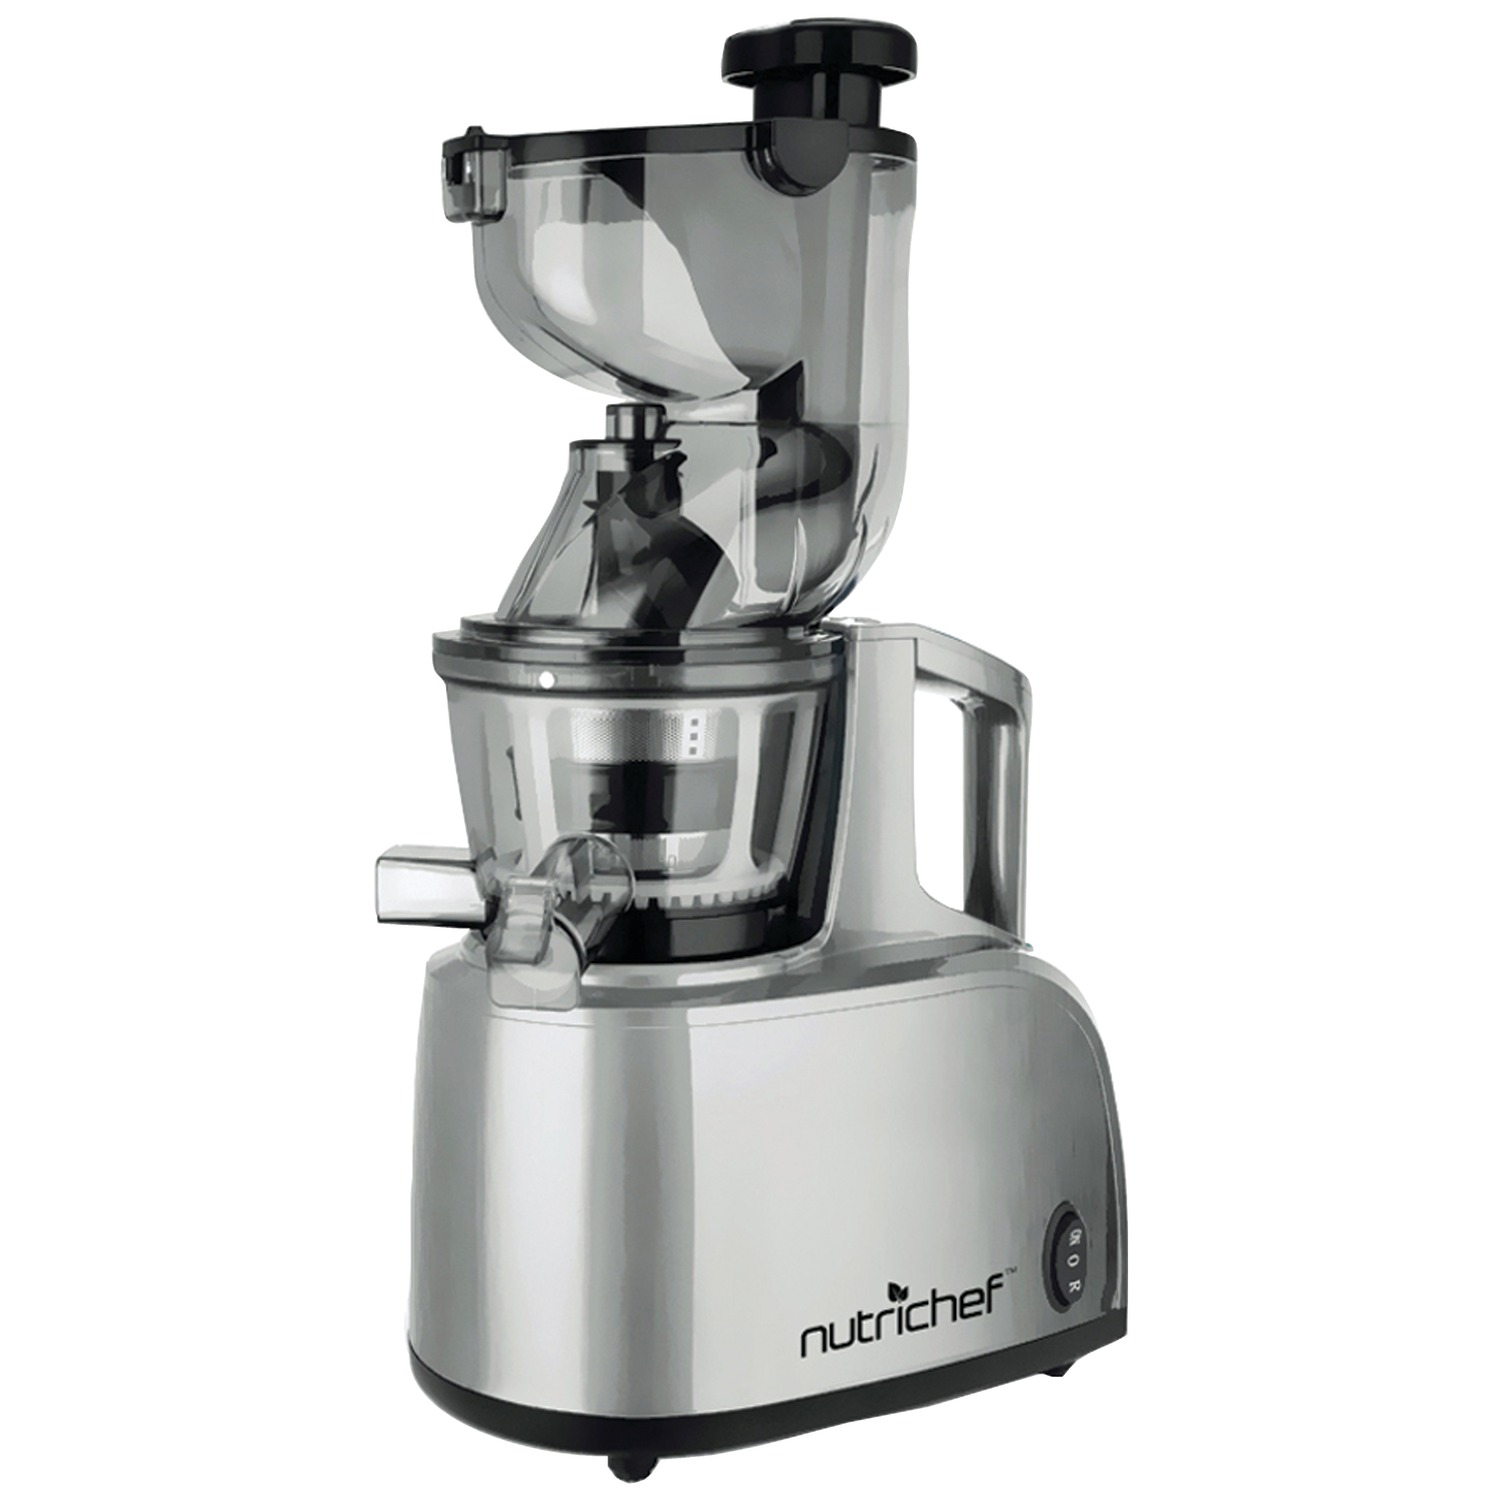 Slow Juicer Vs Regular : NUTRICHEF PKSJ40 Countertop Masticating Slow Juicer & Drink Maker